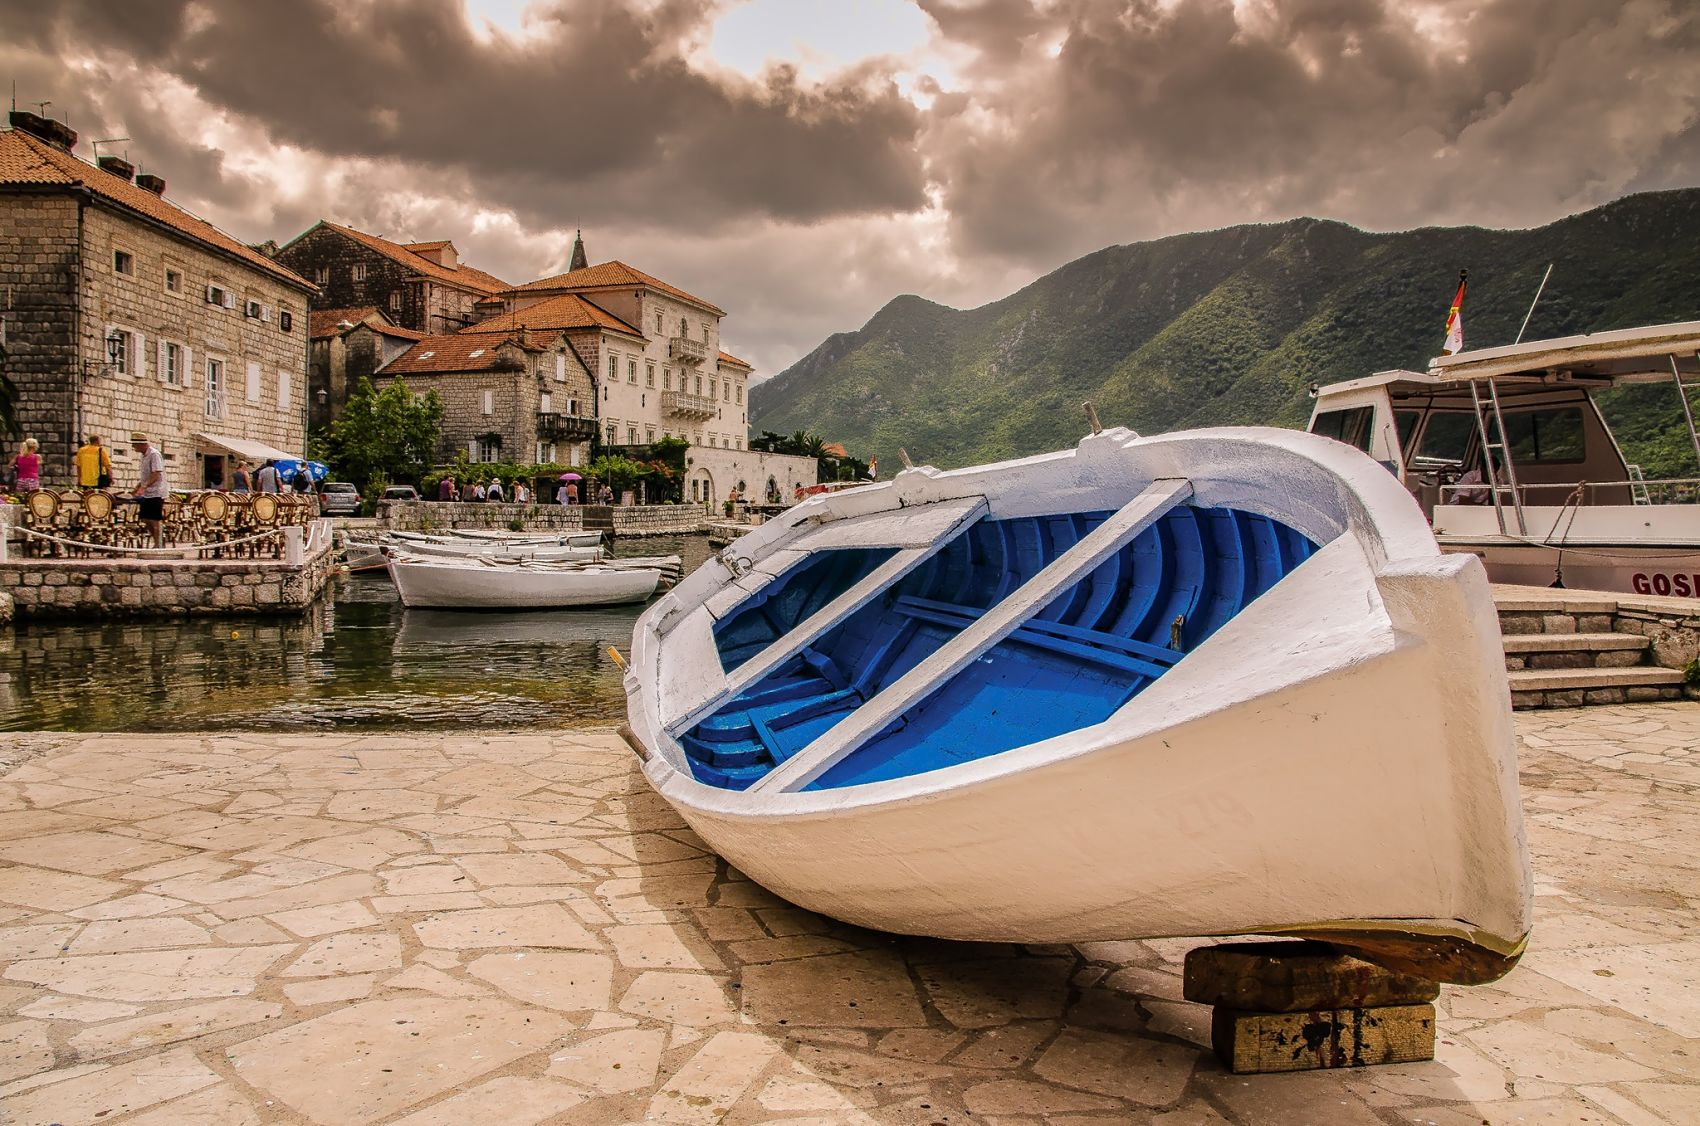 Old boat on the pear,Montenegro